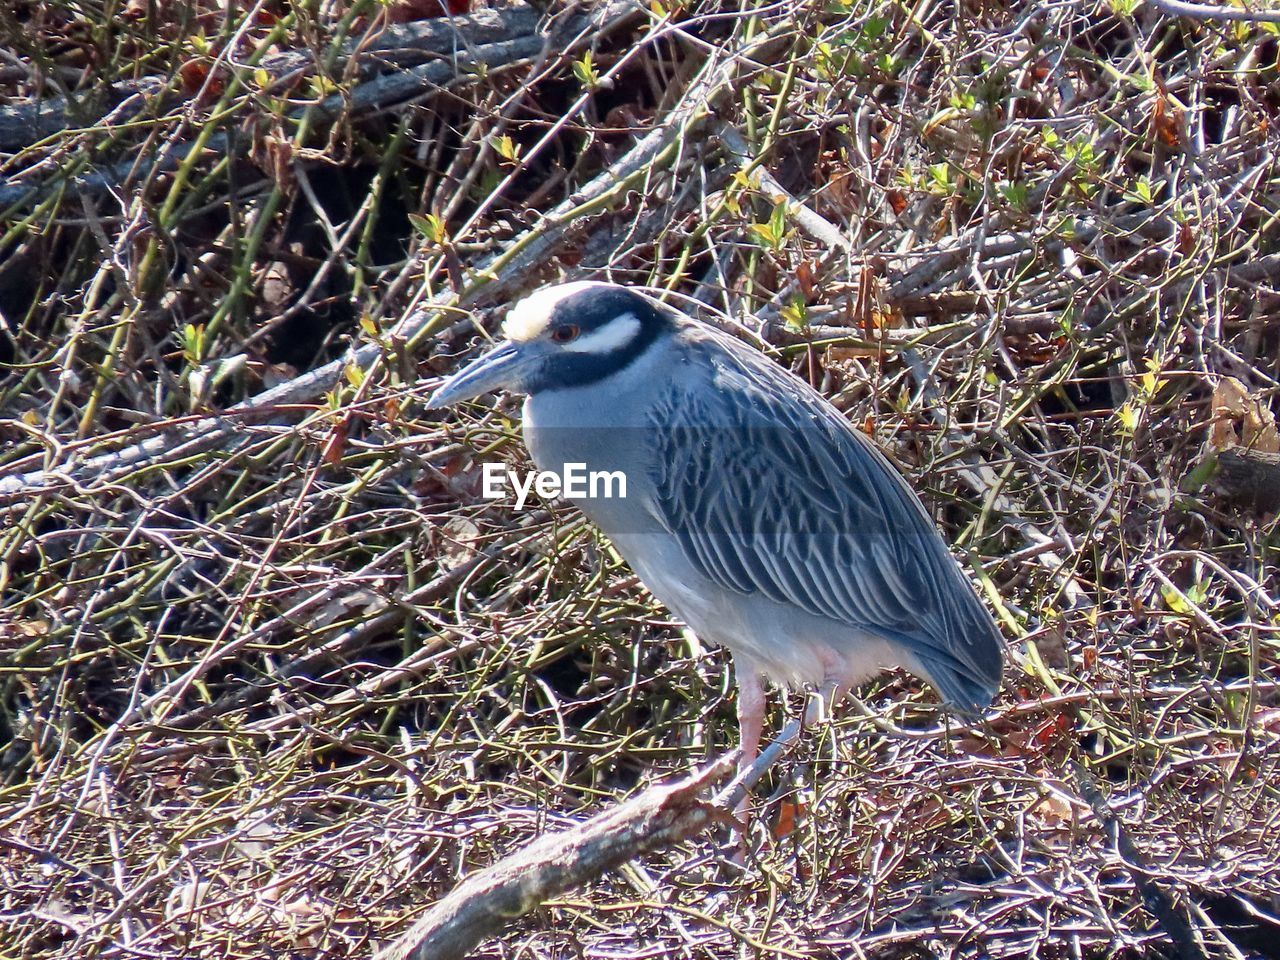 one animal, animal themes, animal, animal wildlife, bird, animals in the wild, vertebrate, plant, perching, no people, land, heron, nature, day, side view, field, focus on foreground, water bird, outdoors, close-up